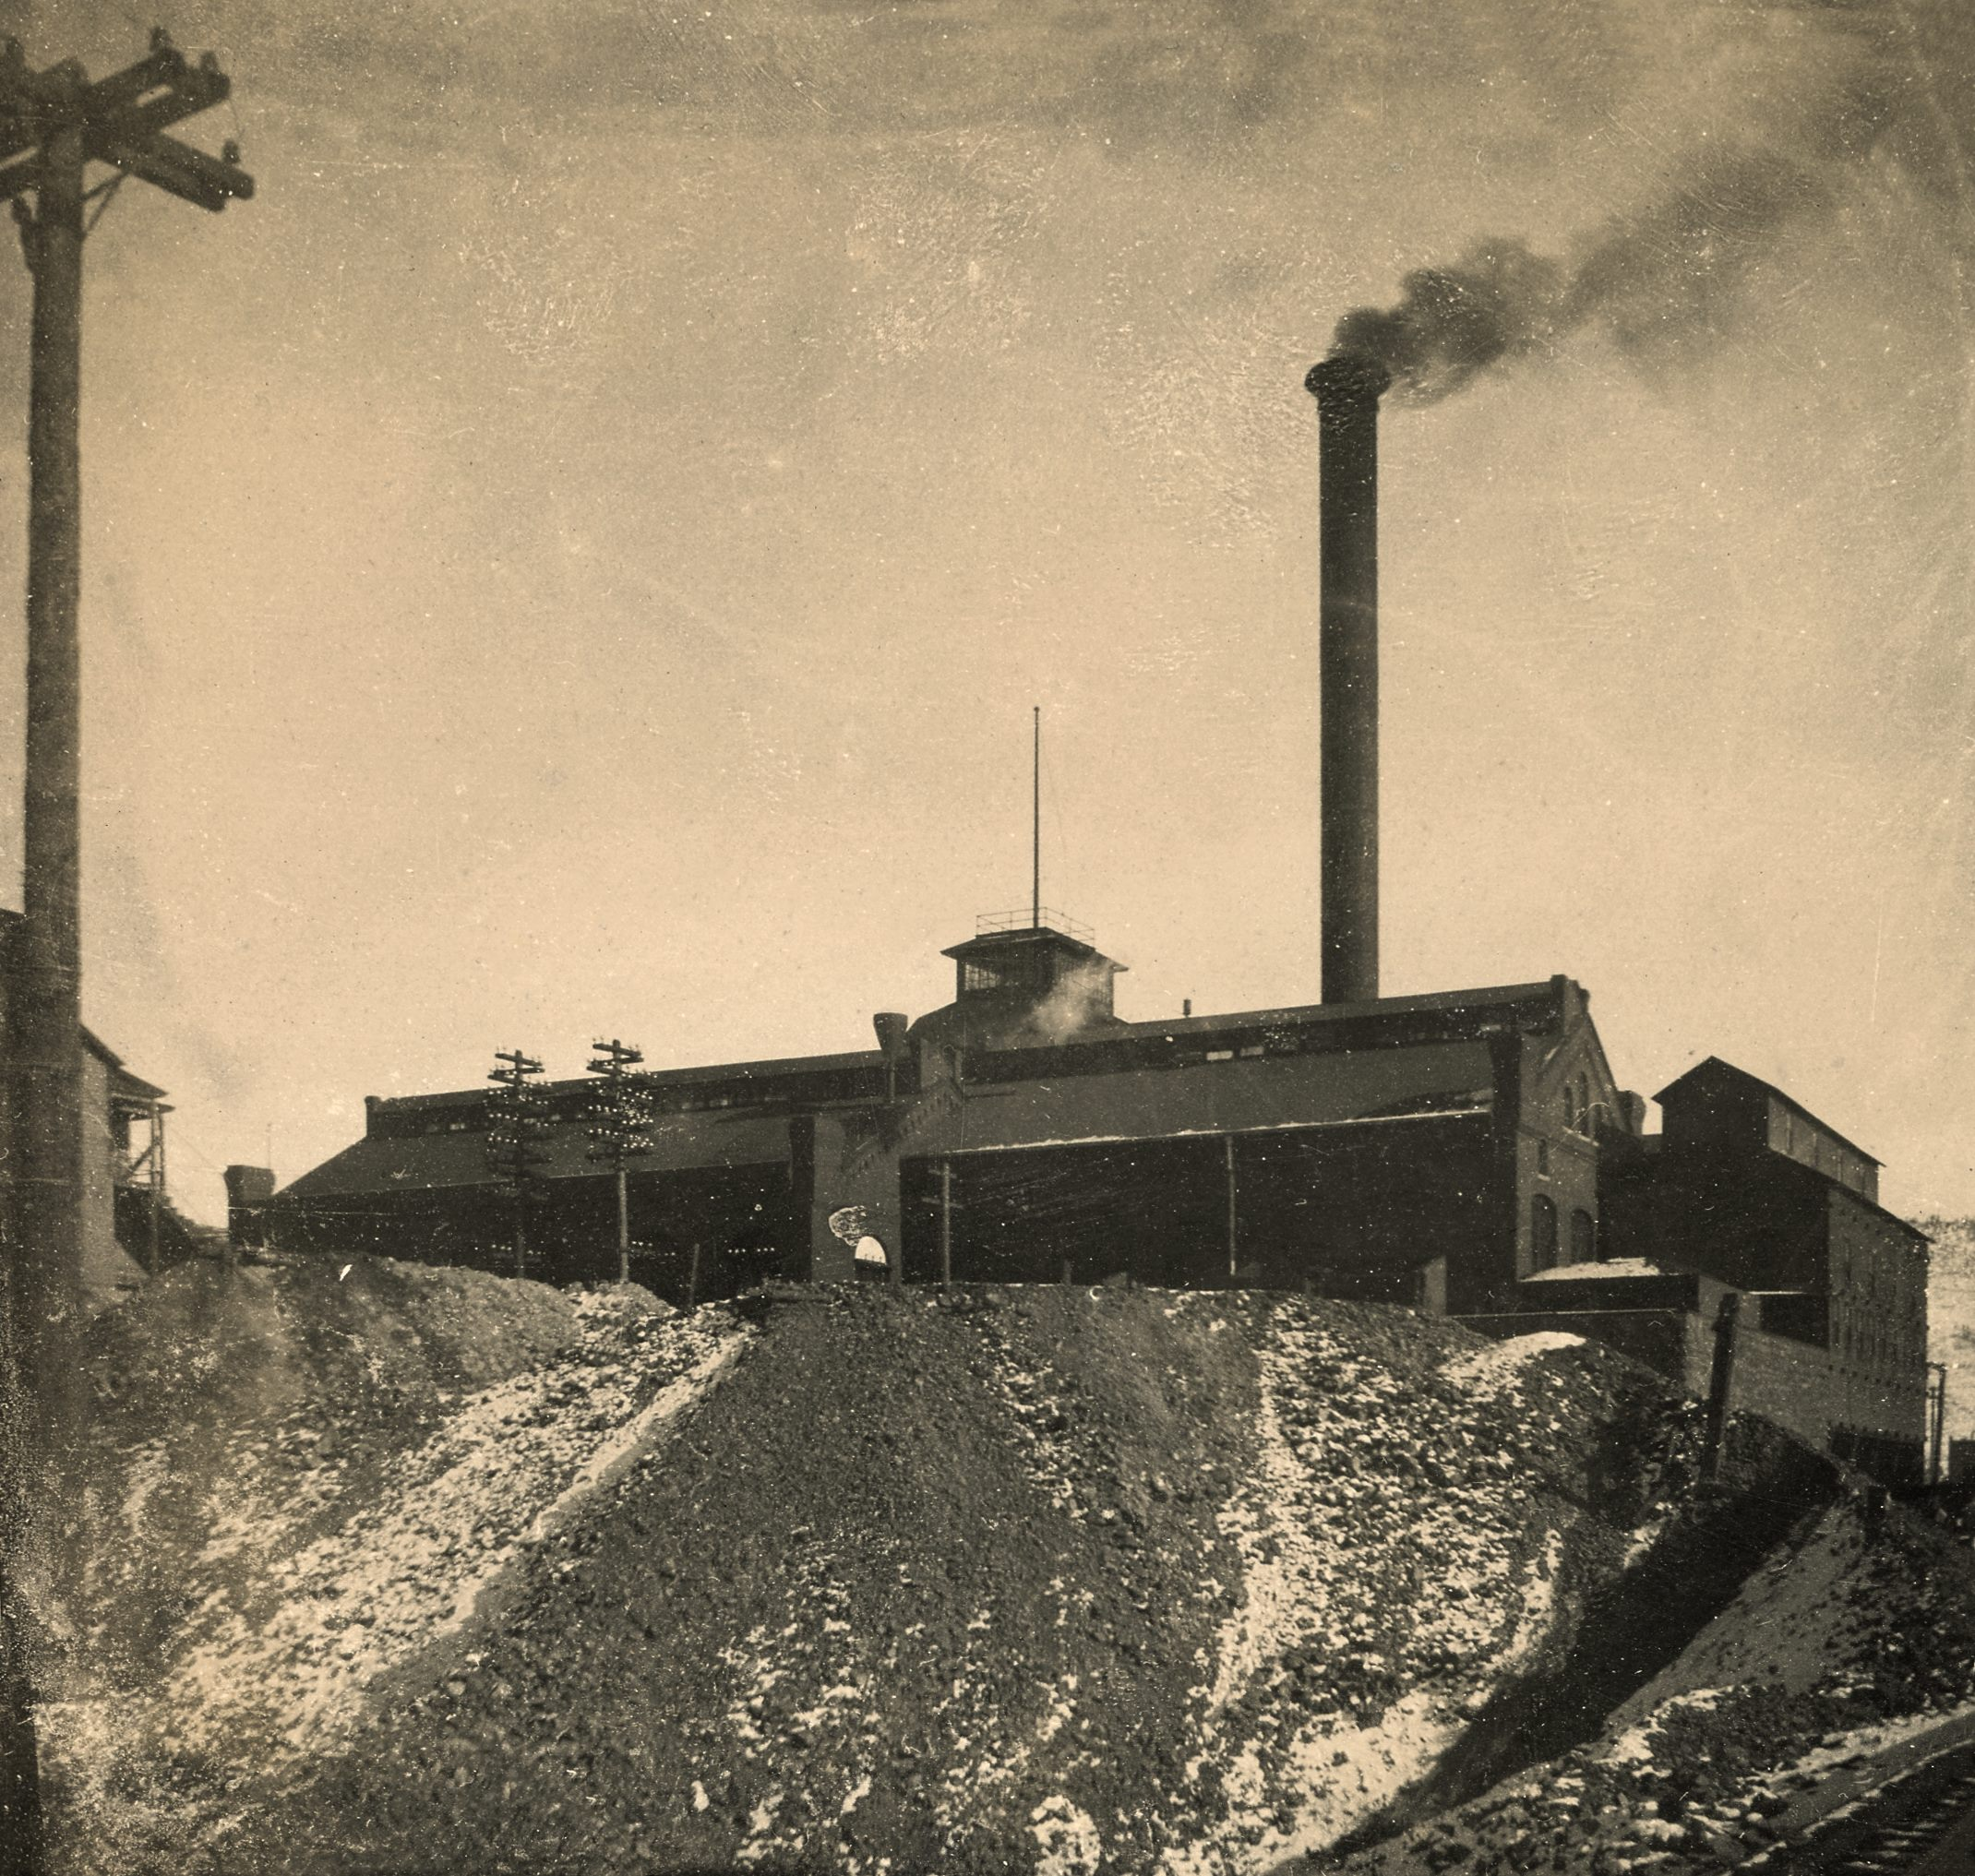 This view of the Gold Coin Mine is taken from the roadbed of the F. & C.C. railroad, as seen in lower right corner where a piece of the track is visible. While the sheet this image was pasted into has an 1898 date to it, that is plainly wrong as this is the brick version of the mine, and that only happen after it burned in 1899, so I think this is more like 1900, but I can't date it more precisely, sadly.    The version shown here is enhanced to fix some fading issues on the original, in addition to me using a perspective filter to make the sides of the structures more appealing and level, making me having to crop the image a little of non-important pieces, and I also had to paint in some extra sky and track pieces, but I think it gives the credit to he source image as it should do, a view of the mine as it would have been seen from the Florence & Cripple Creek tracks west of the mine!